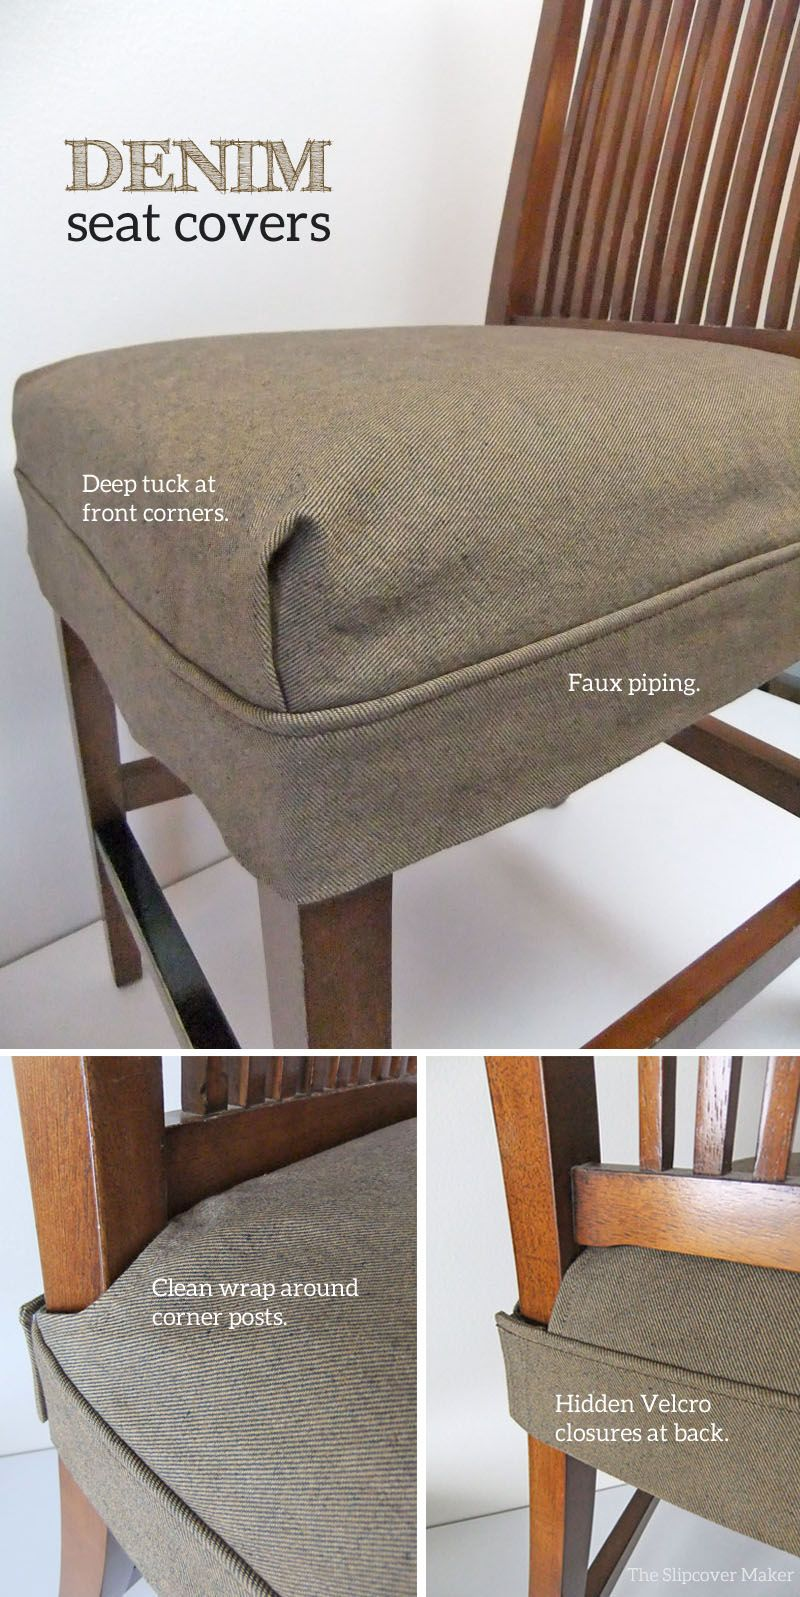 Washable Seat Covers For Dining Room Chairs Are A Smart Choice Best Chairs Covers For Dining Room 2018